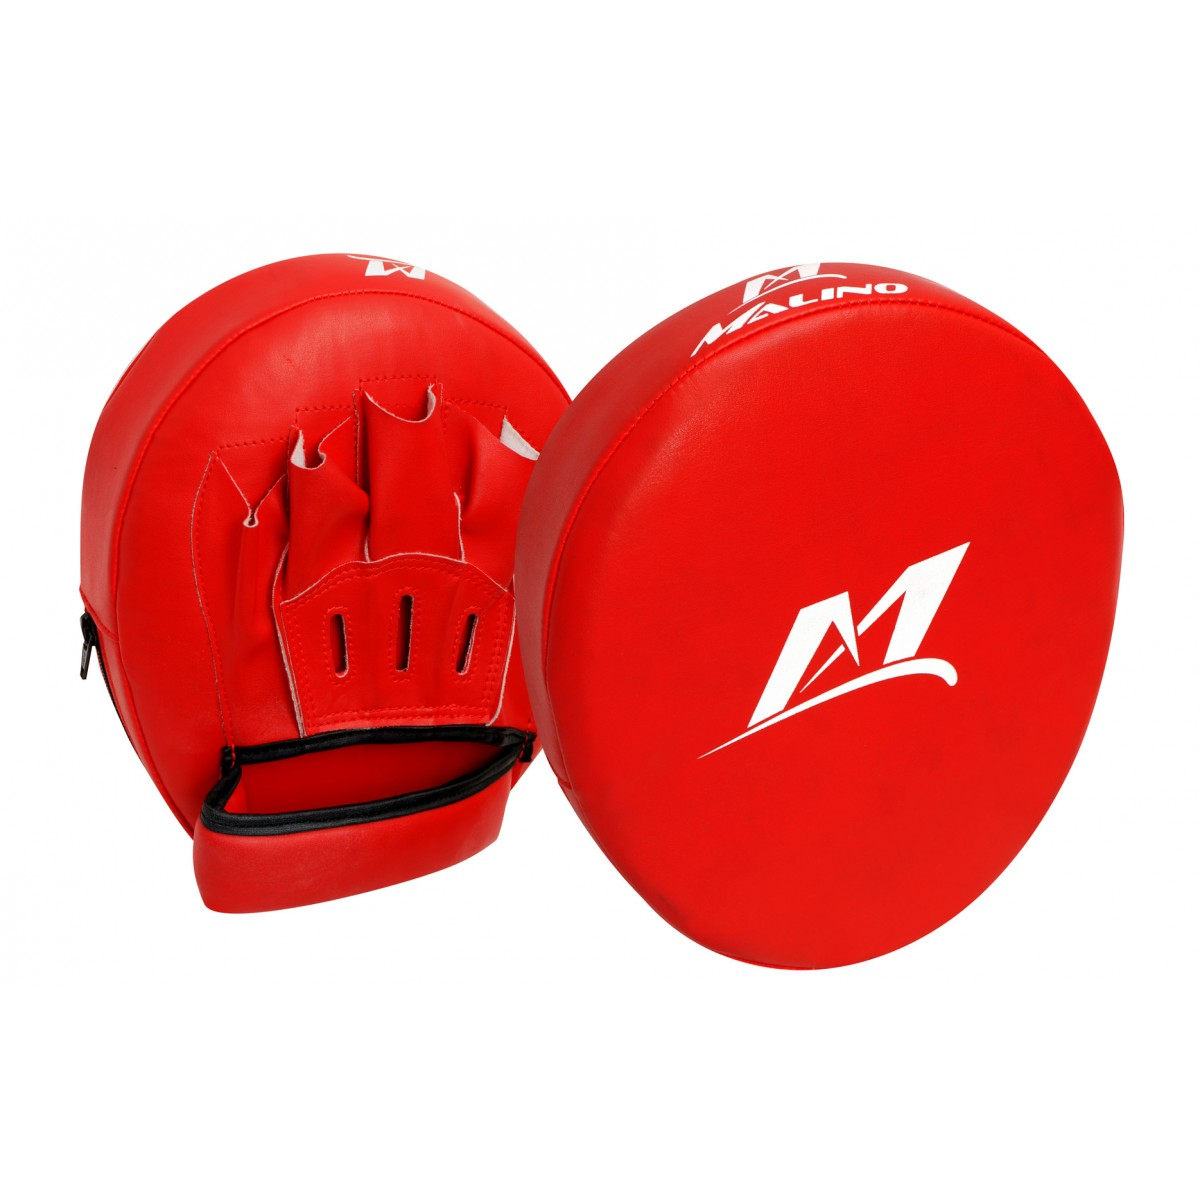 Malino Focus Pads Red